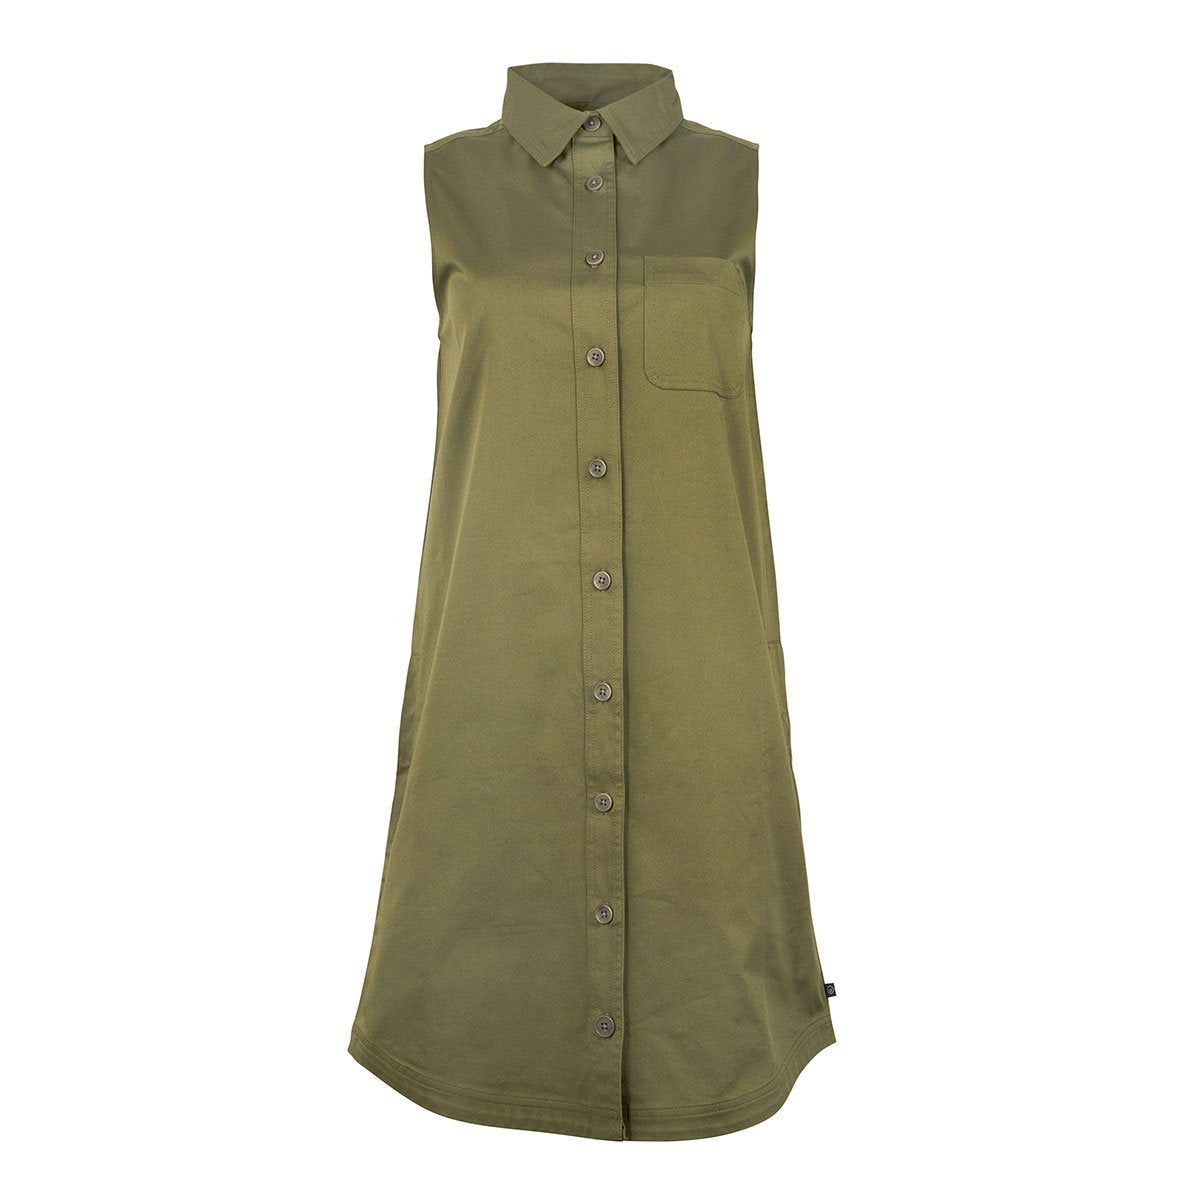 United By Blue | Women's Pinnacle Commuter Dress | Olive